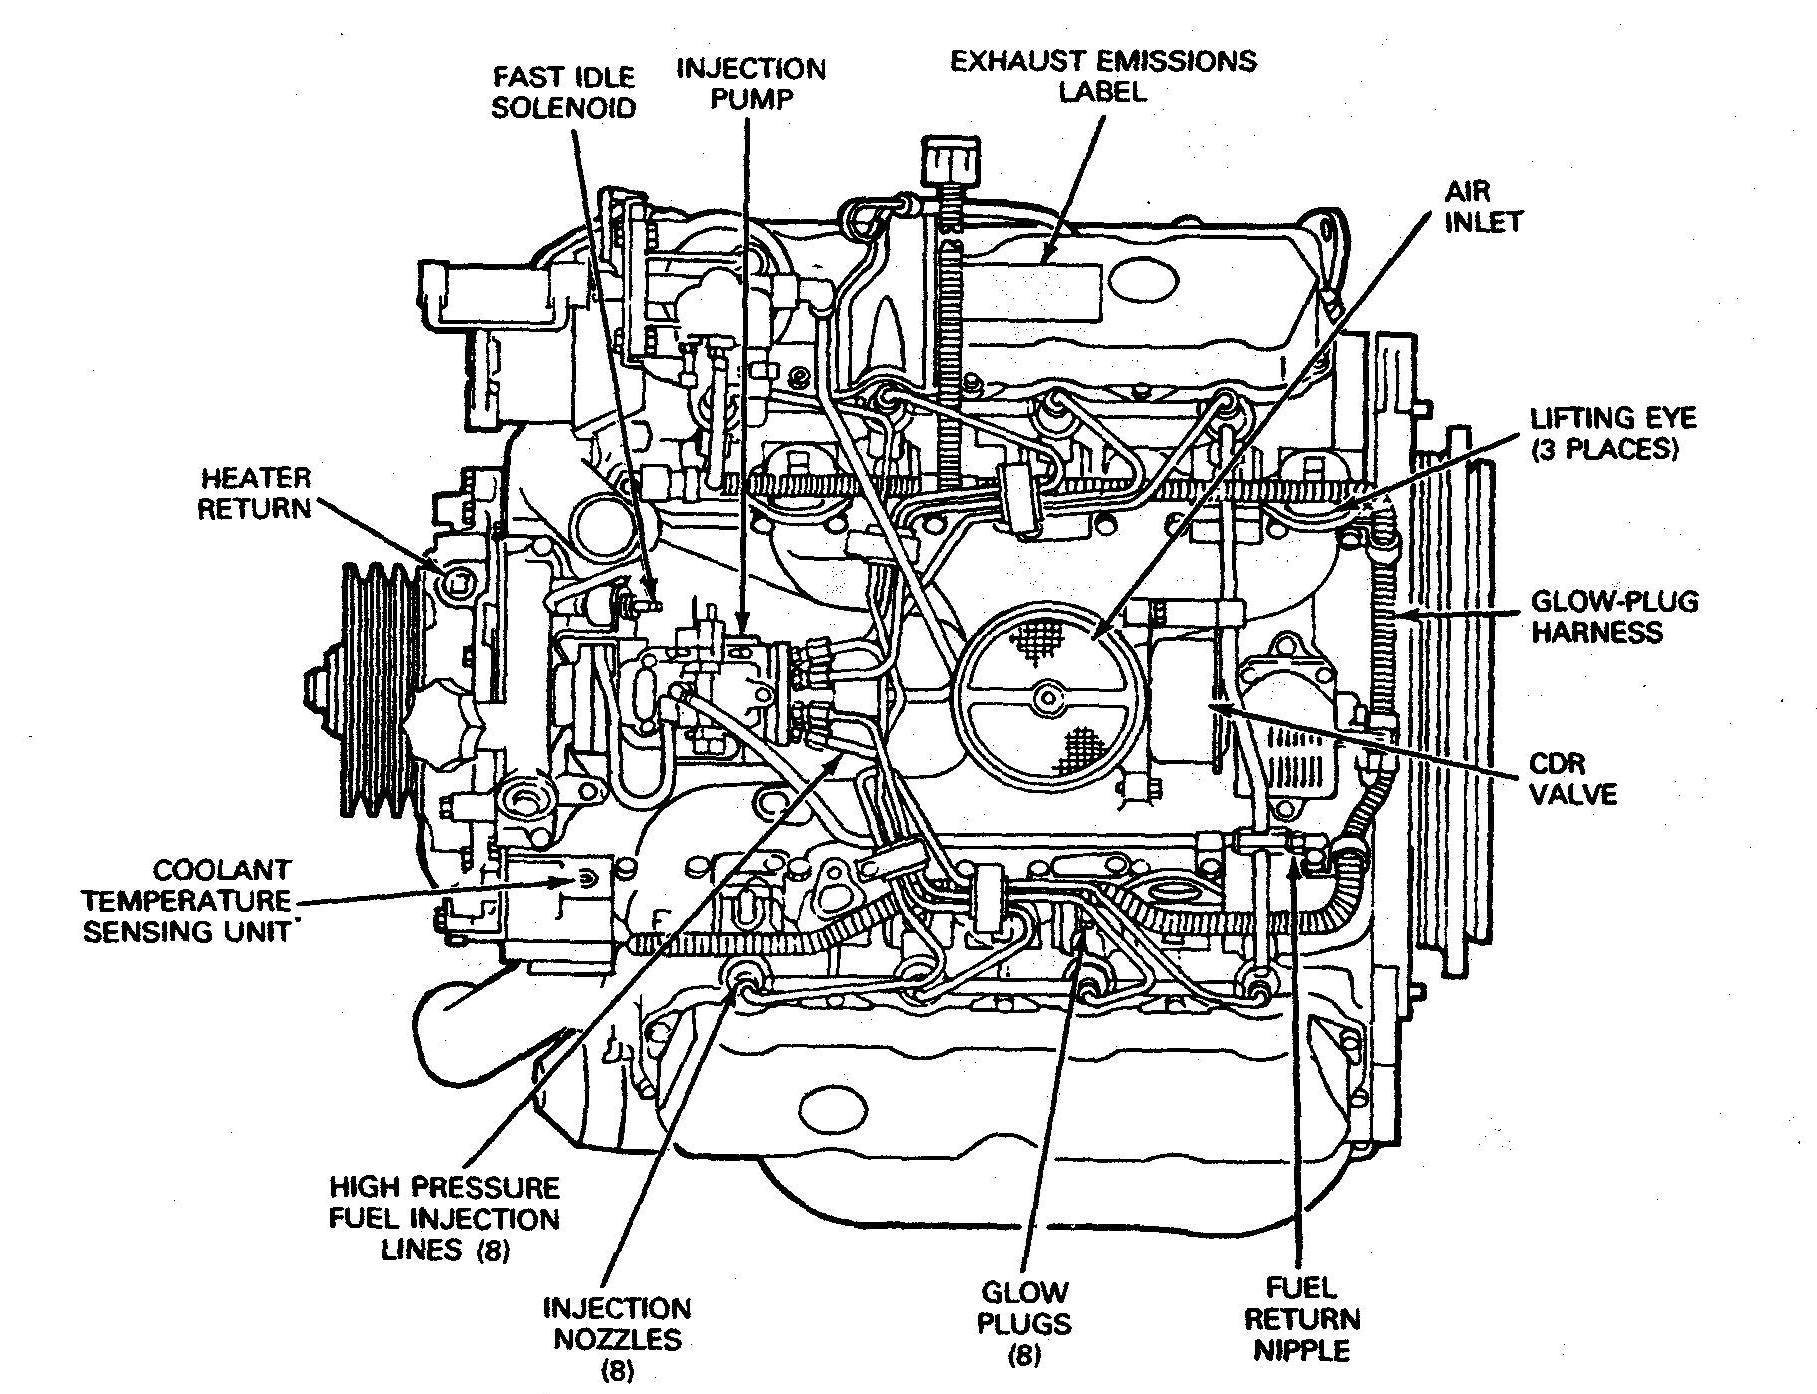 Honda Engine Parts Diagram Craftsman Generator Model My Wiring Automotive Diagrams Of